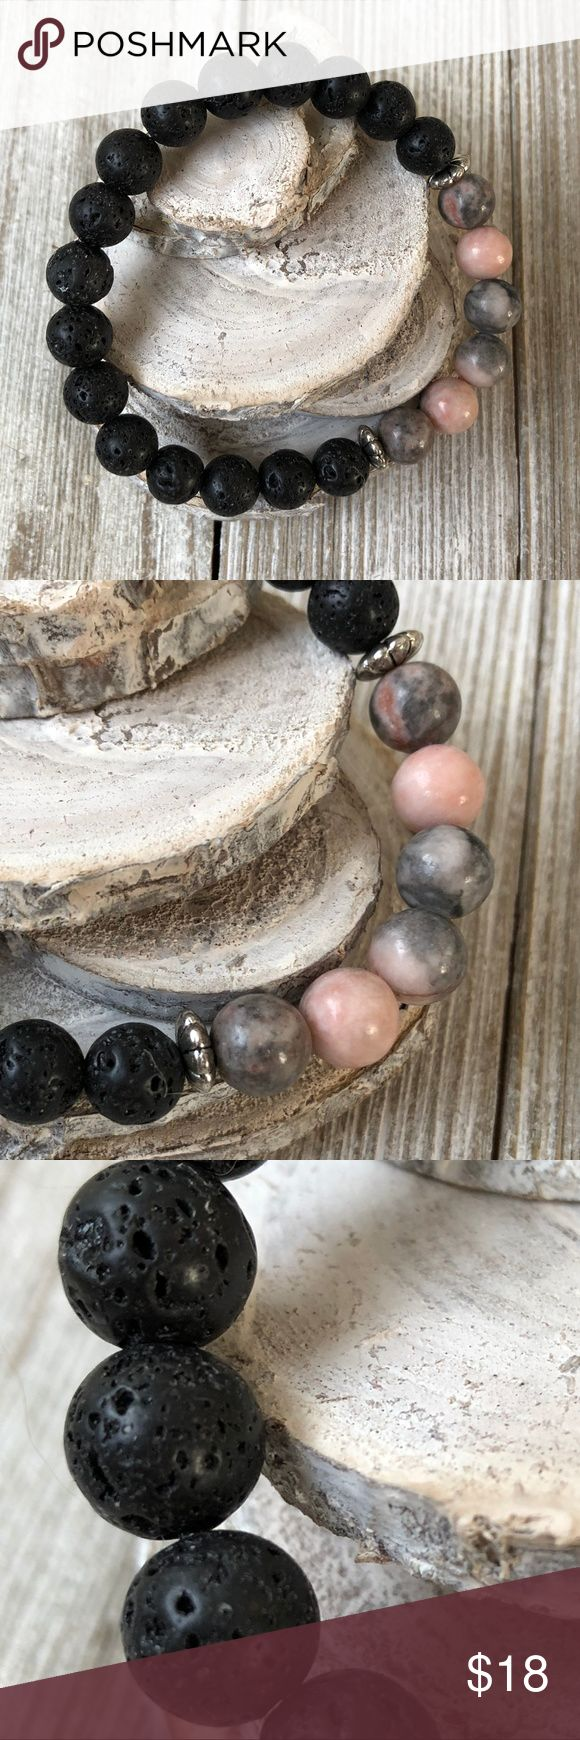 Essential Oil Diffuser Bracelet Jasper & Lava Rock 8 mm Jasper and Lava Rock beads, pink gray grey black, Made with Professional stretch cord Put essential oils on lava rocks to carry aroma with you! Essential Oils available on my website at top of closet in my banner, just click on website Lisa Halstead Jewelry Bracelets